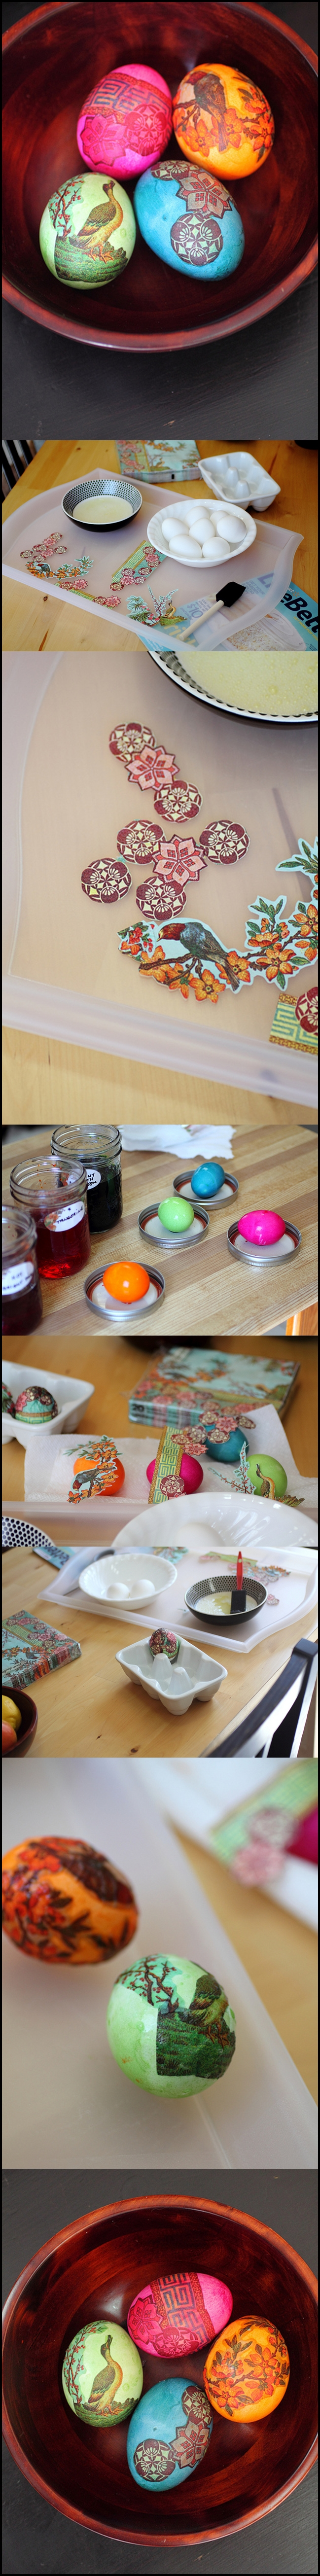 Napkin Egg Decorating m Wonderful DIY napkin egg decorating